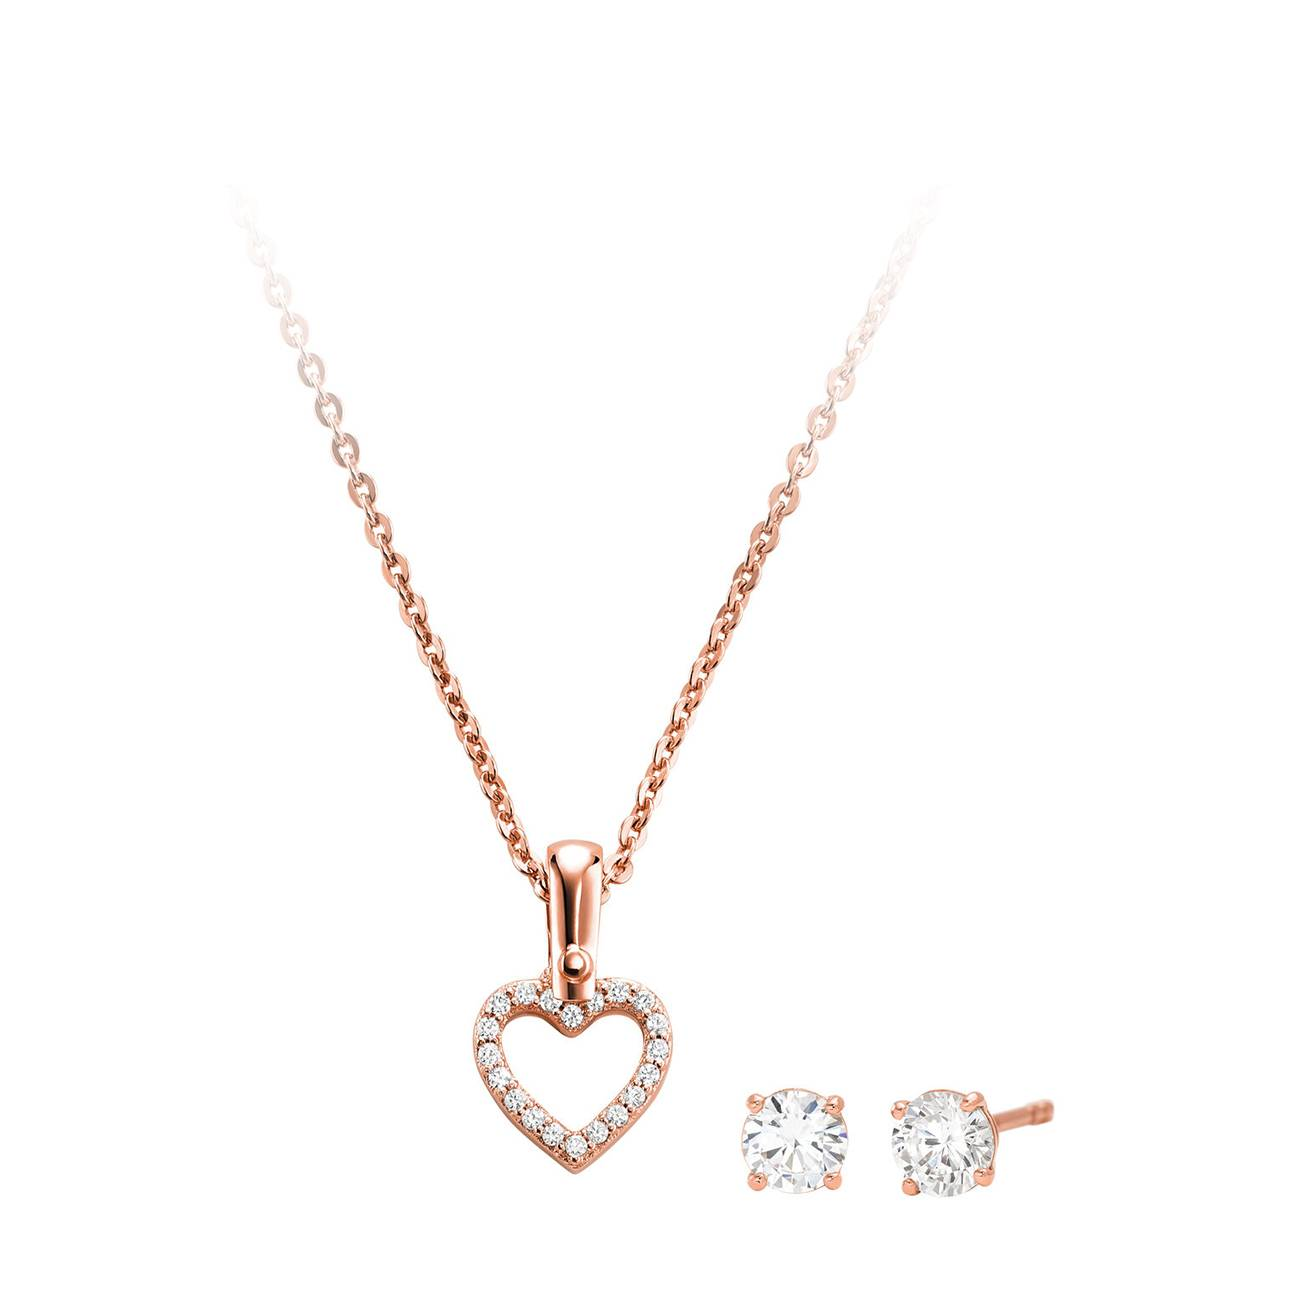 Necklace Boxed Gifting MKC1130AN791 imagine produs